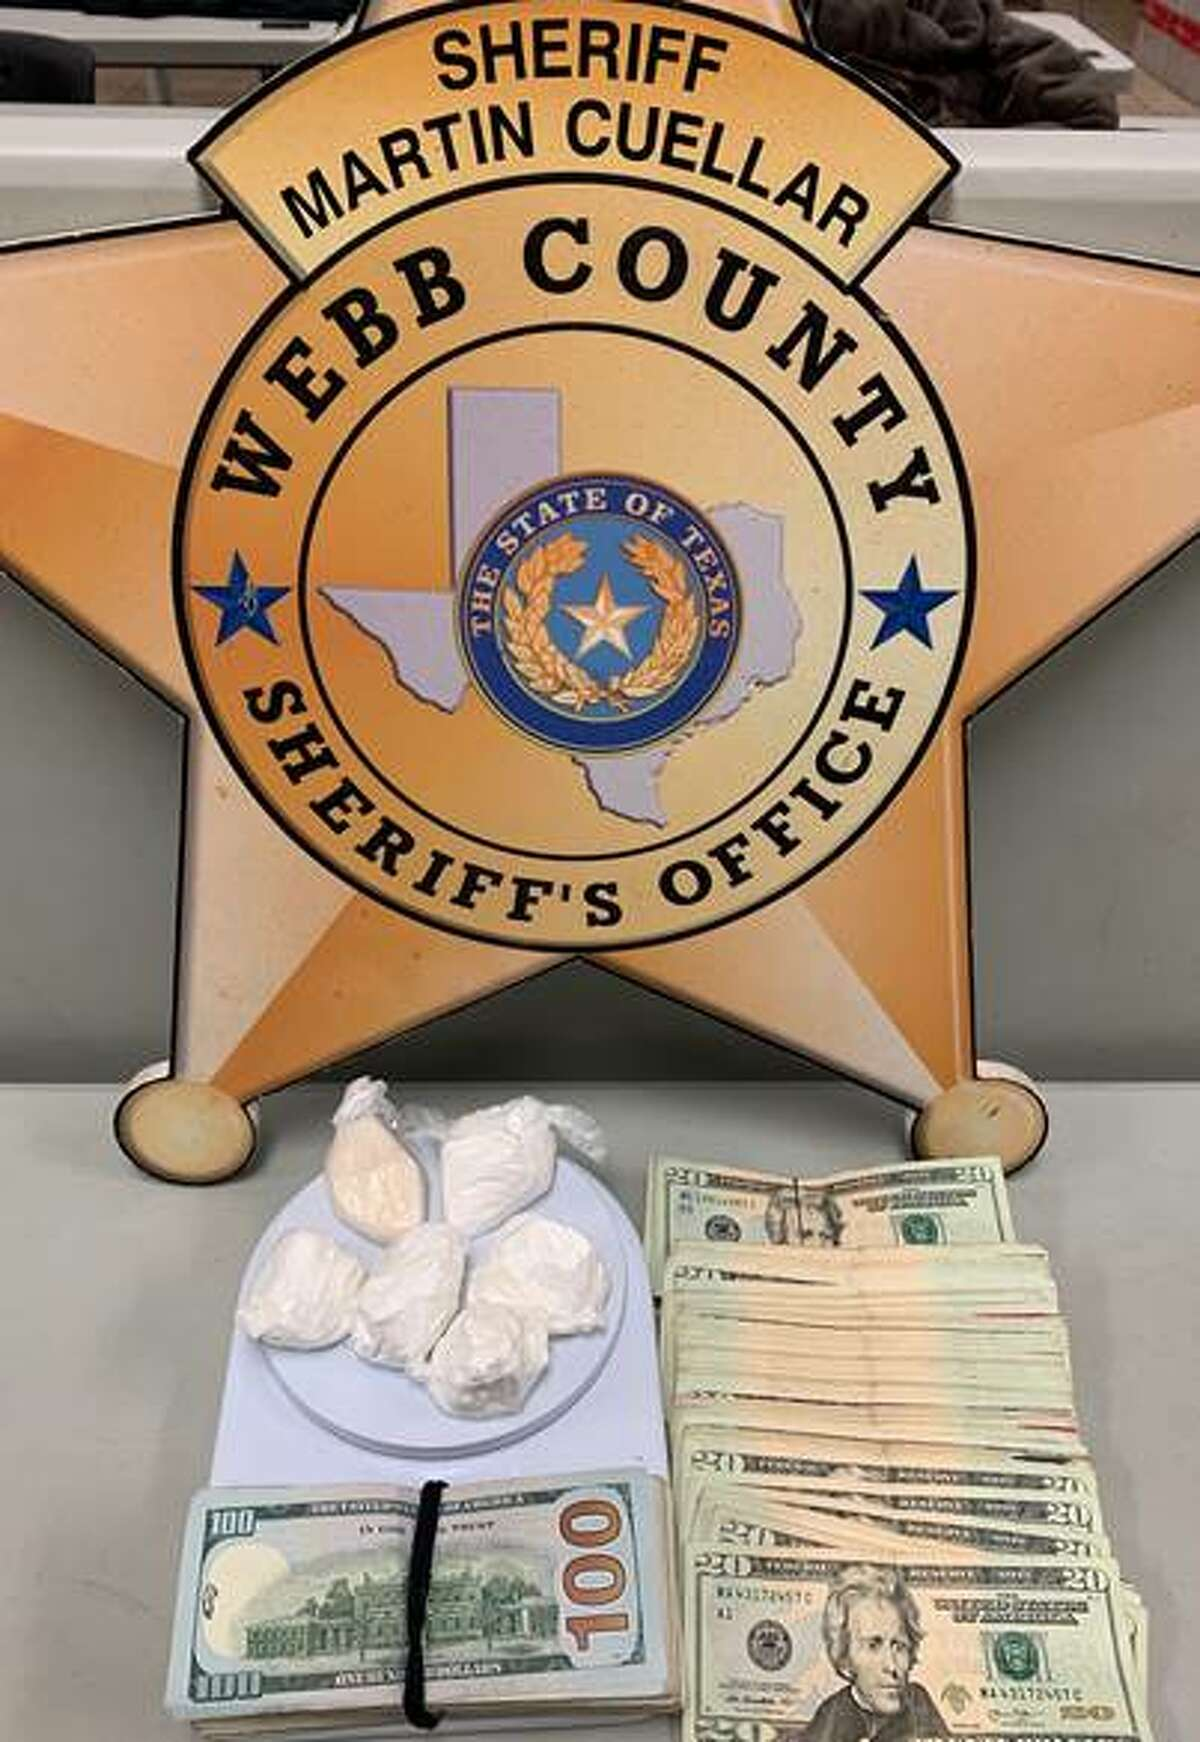 Shown are the 5.4 ounces of cocaine and $2,474 seized Friday from a residence in the 1300 block of Rosario Street.